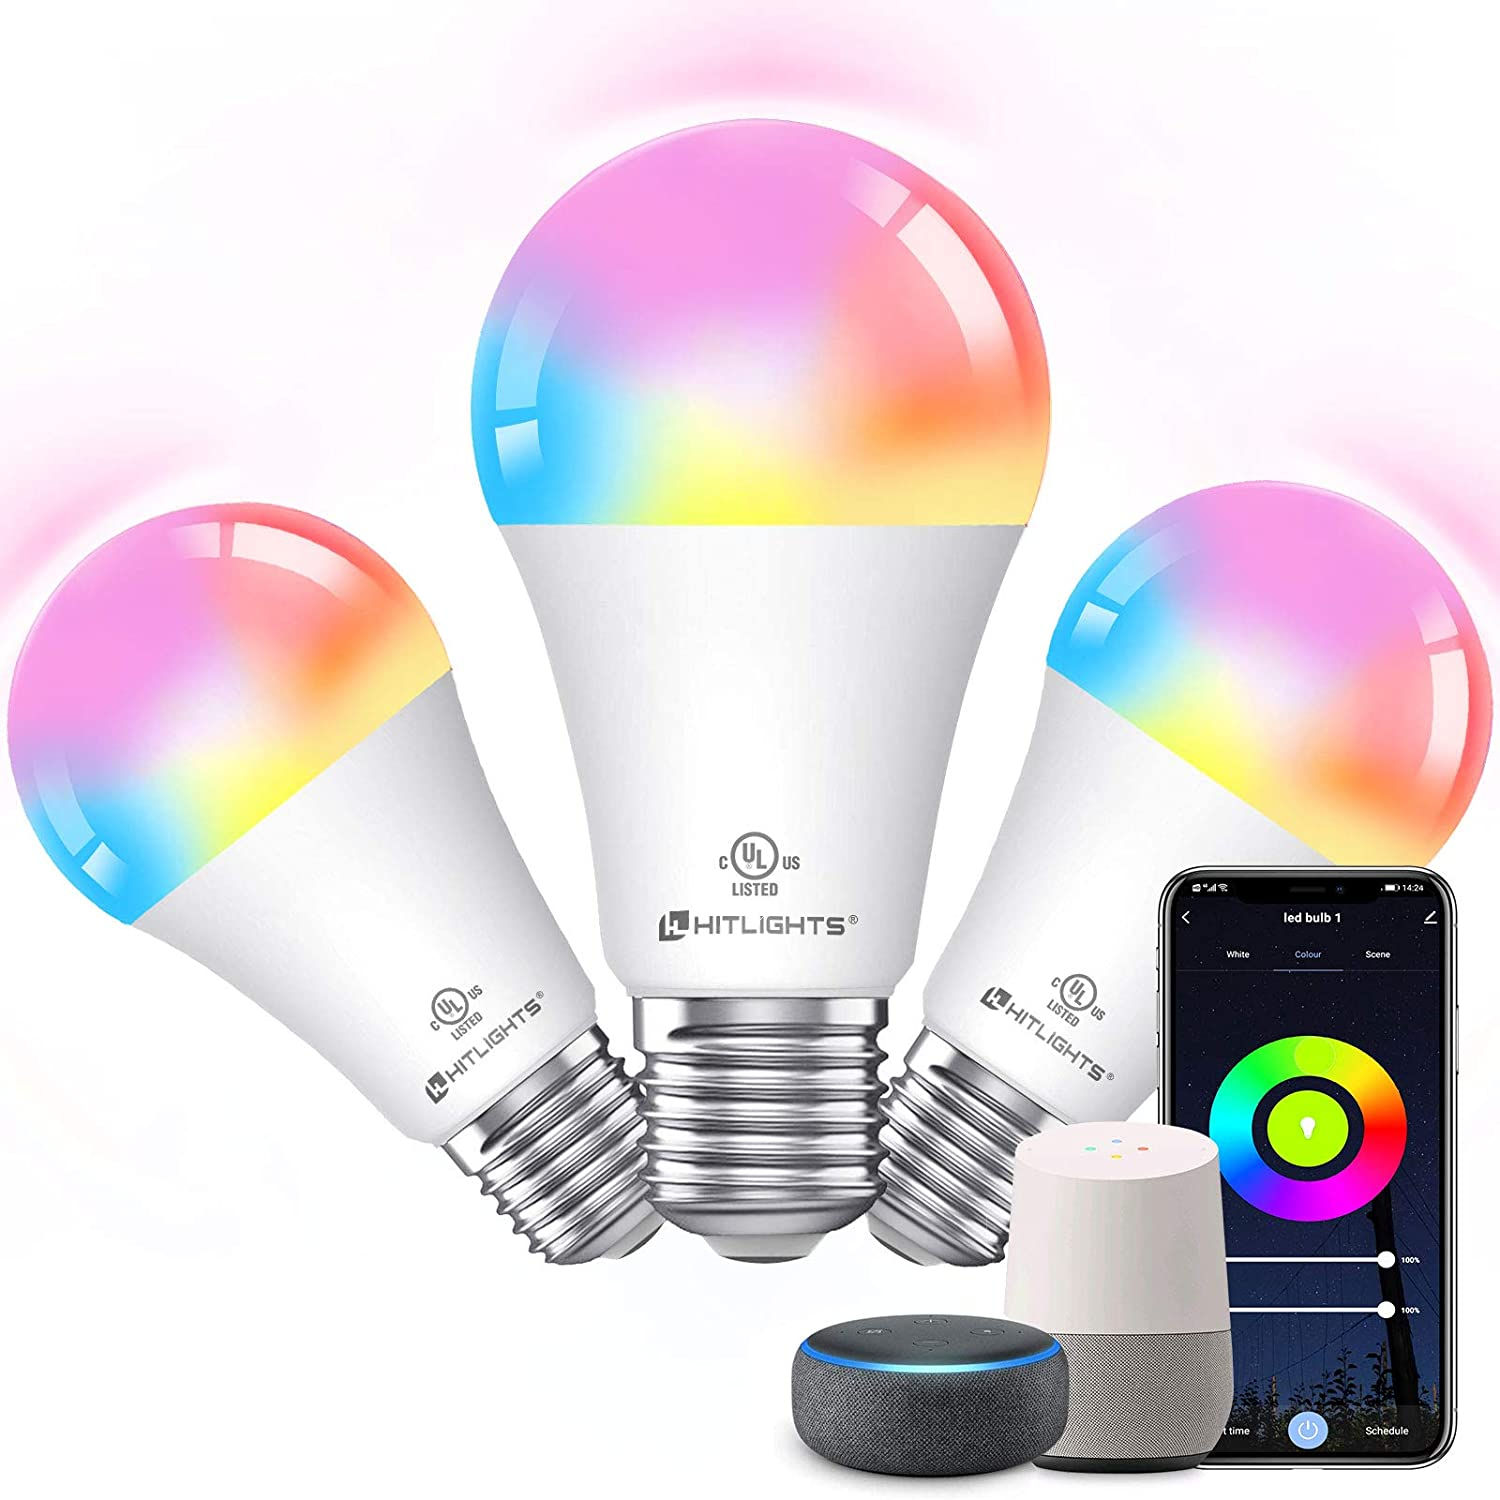 Smart WiFi LED Light Bulb Dimmable, HitLights UL Listed RGB Lightbulbs Work with APP Alexa Google Home, Color Changing Light Bulb for Bedroom, A19 E26 9.5W 60W Equivalent, 3 Pack (Multi-Colored)…